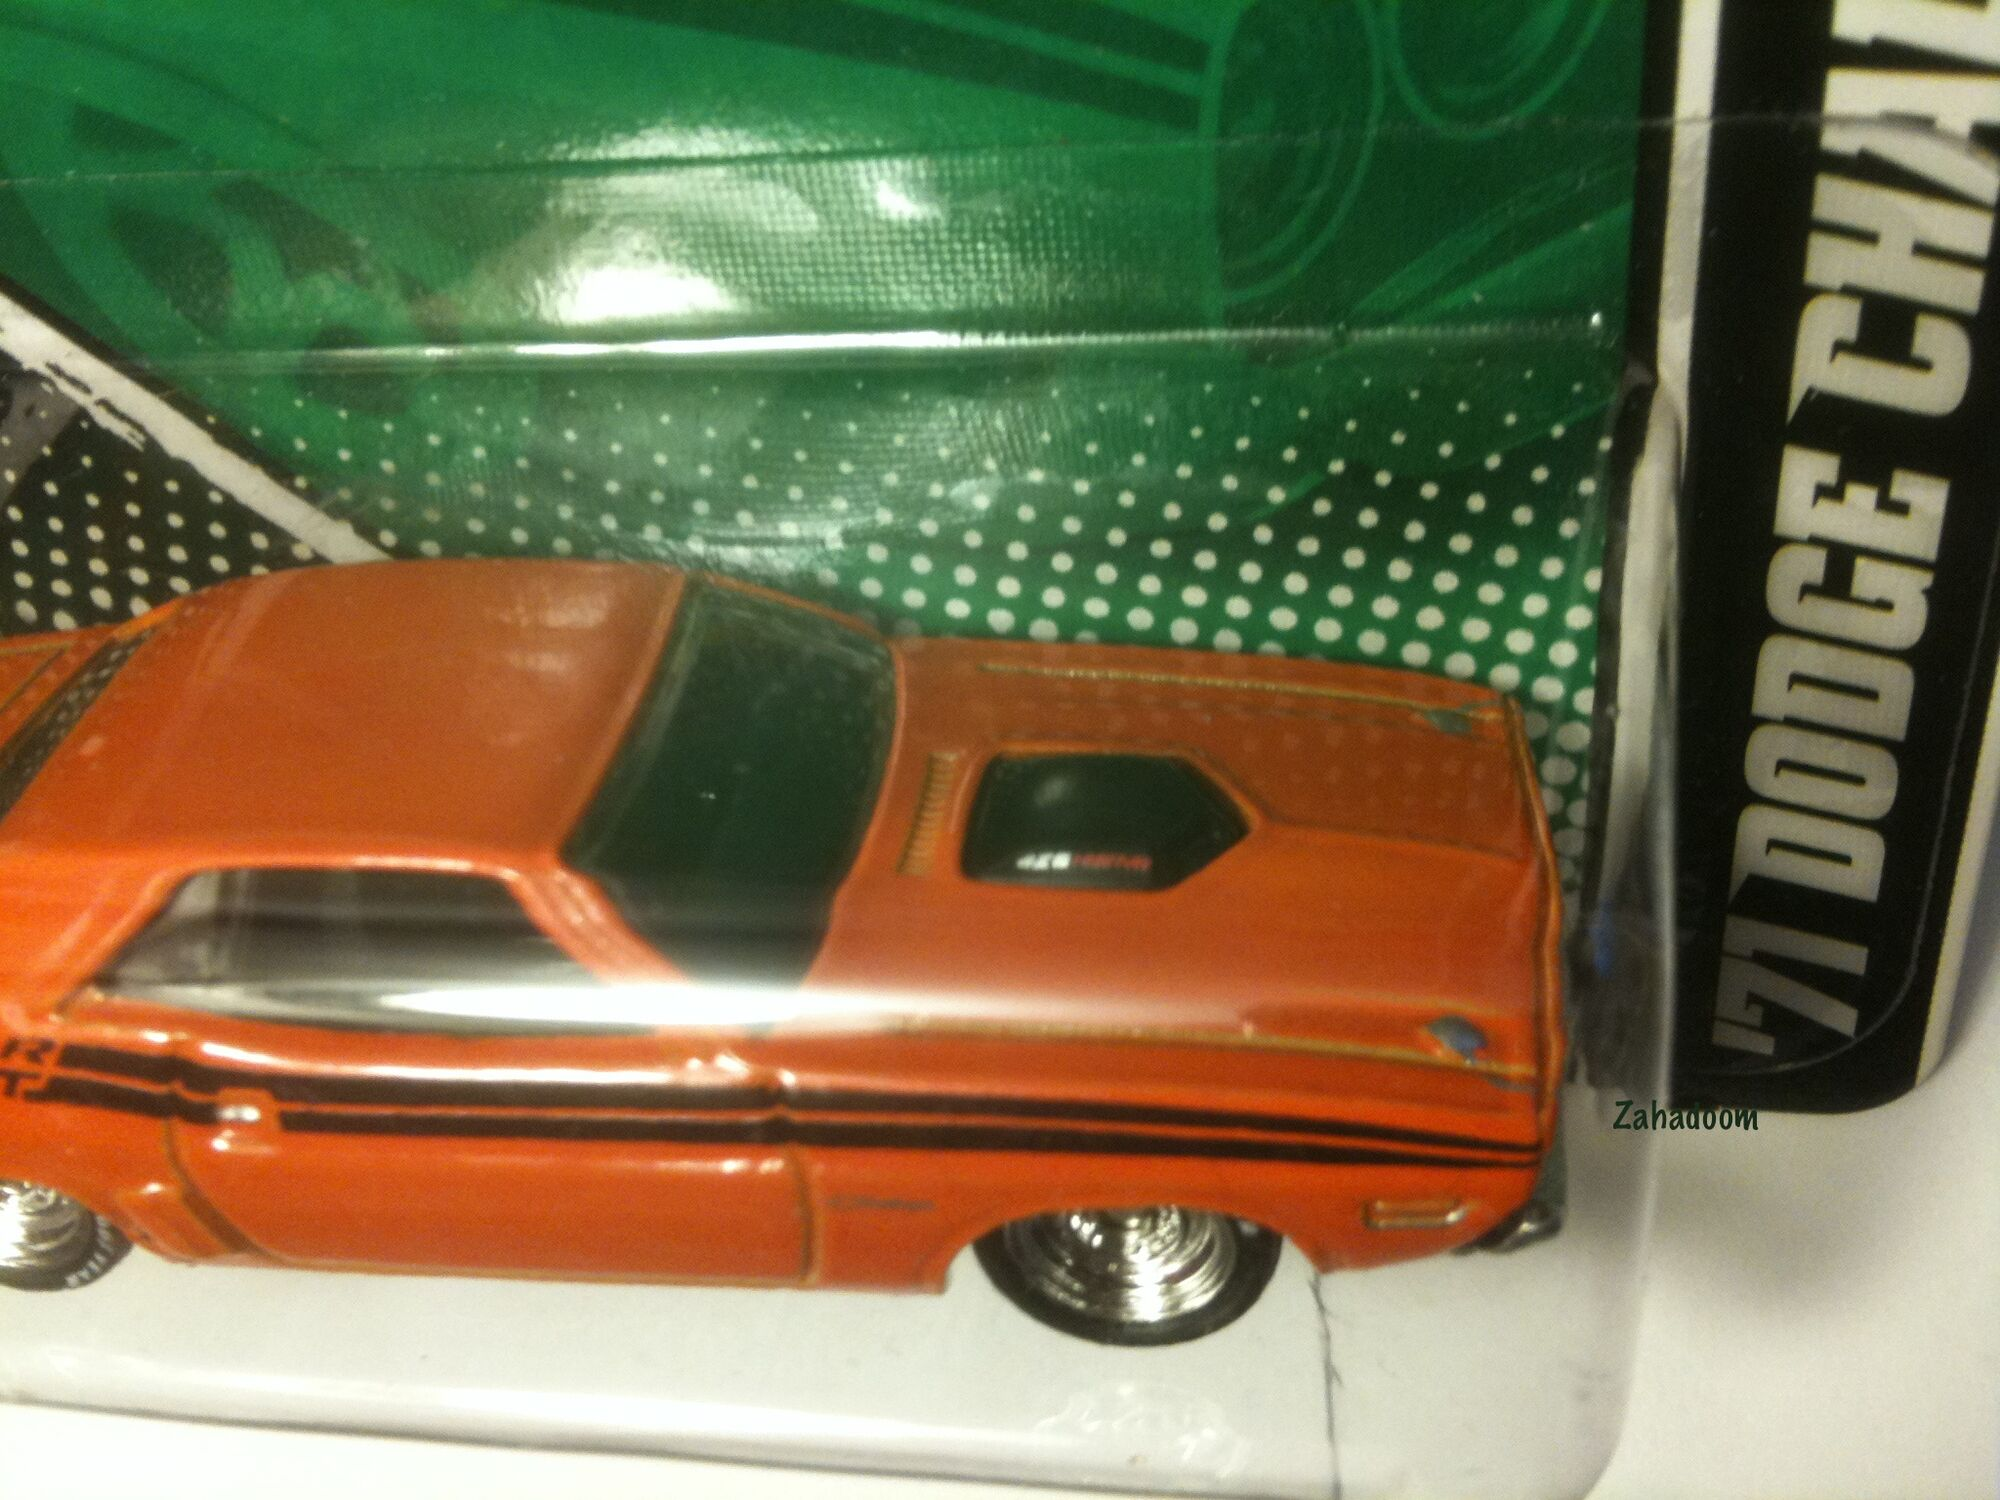 Image 2011 hot wheels garage mopar hal jordan 1971 dodge challenger green lantern hood detail 426 hemi jpg hot wheels wiki fandom powered by wikia